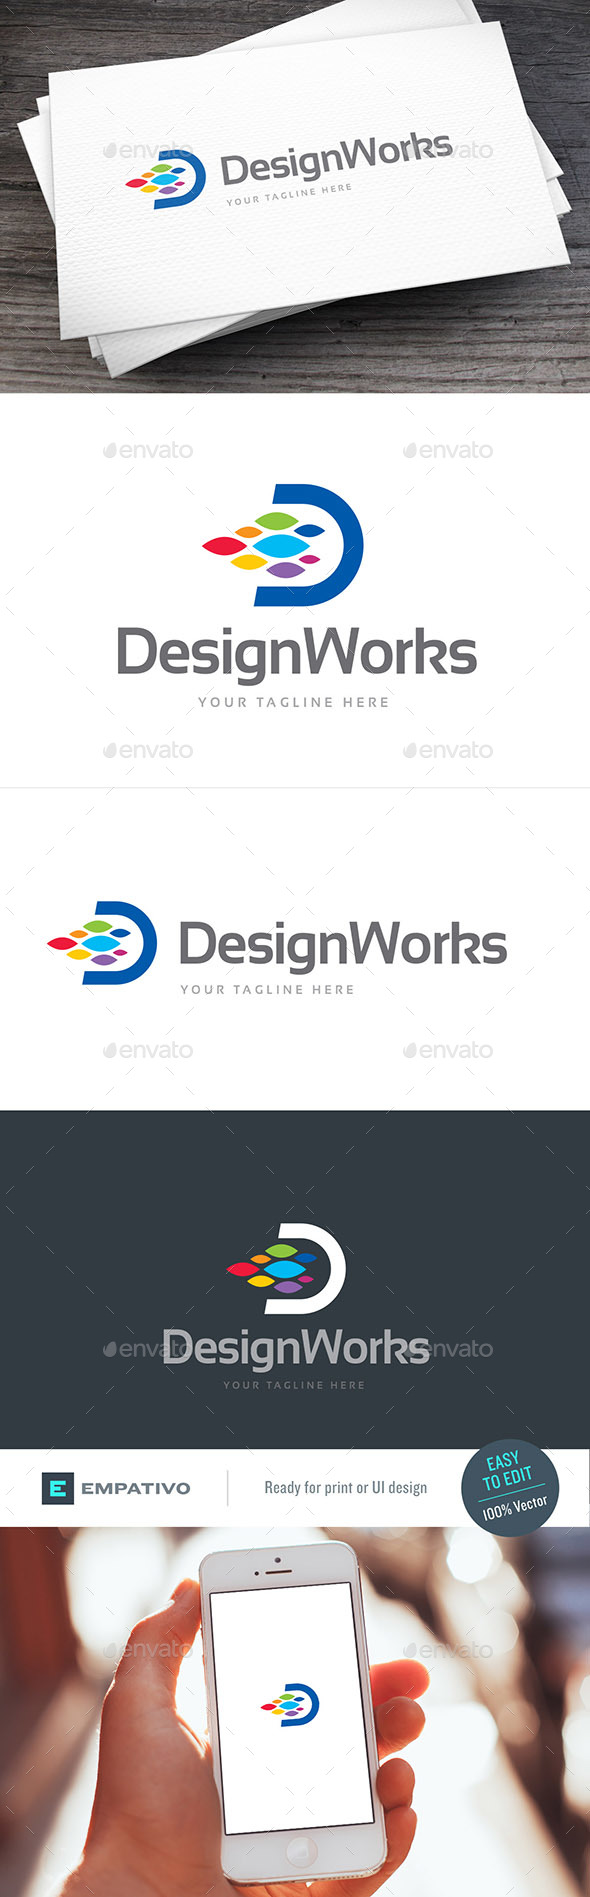 Design Works Logo Template - Letters Logo Templates